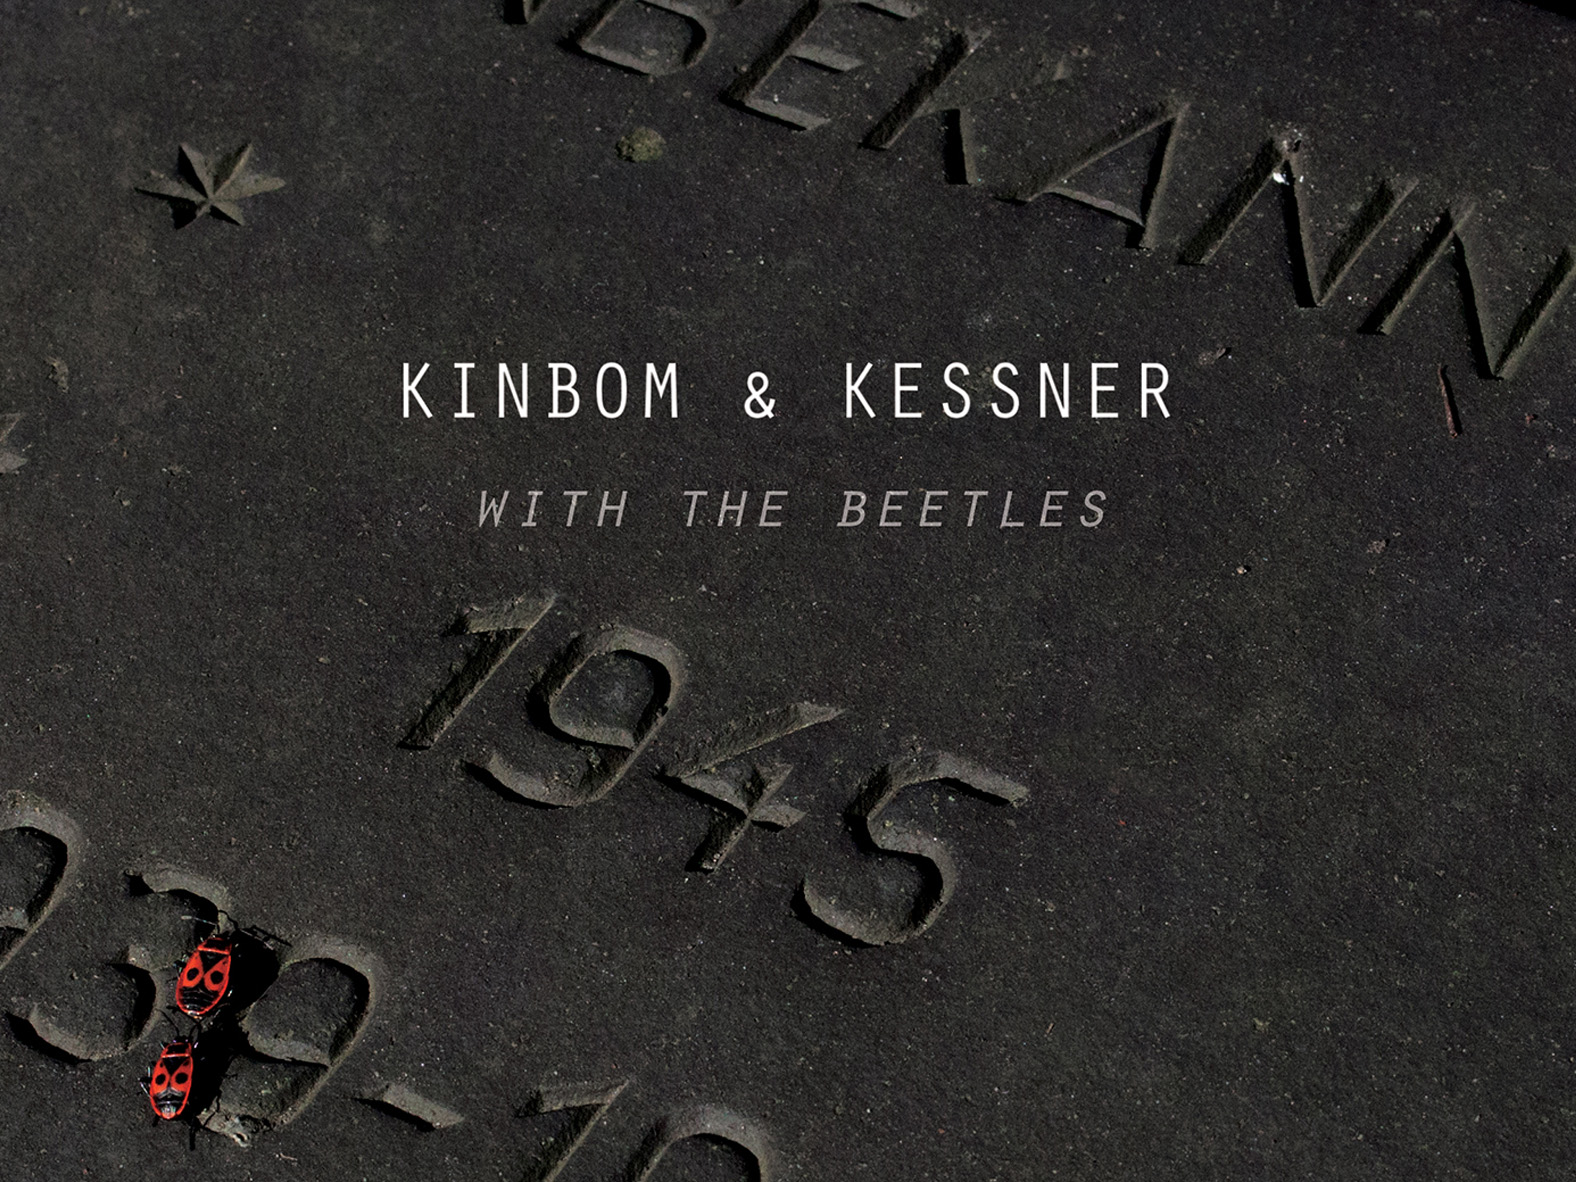 Kinbom & Kessner CD Cover